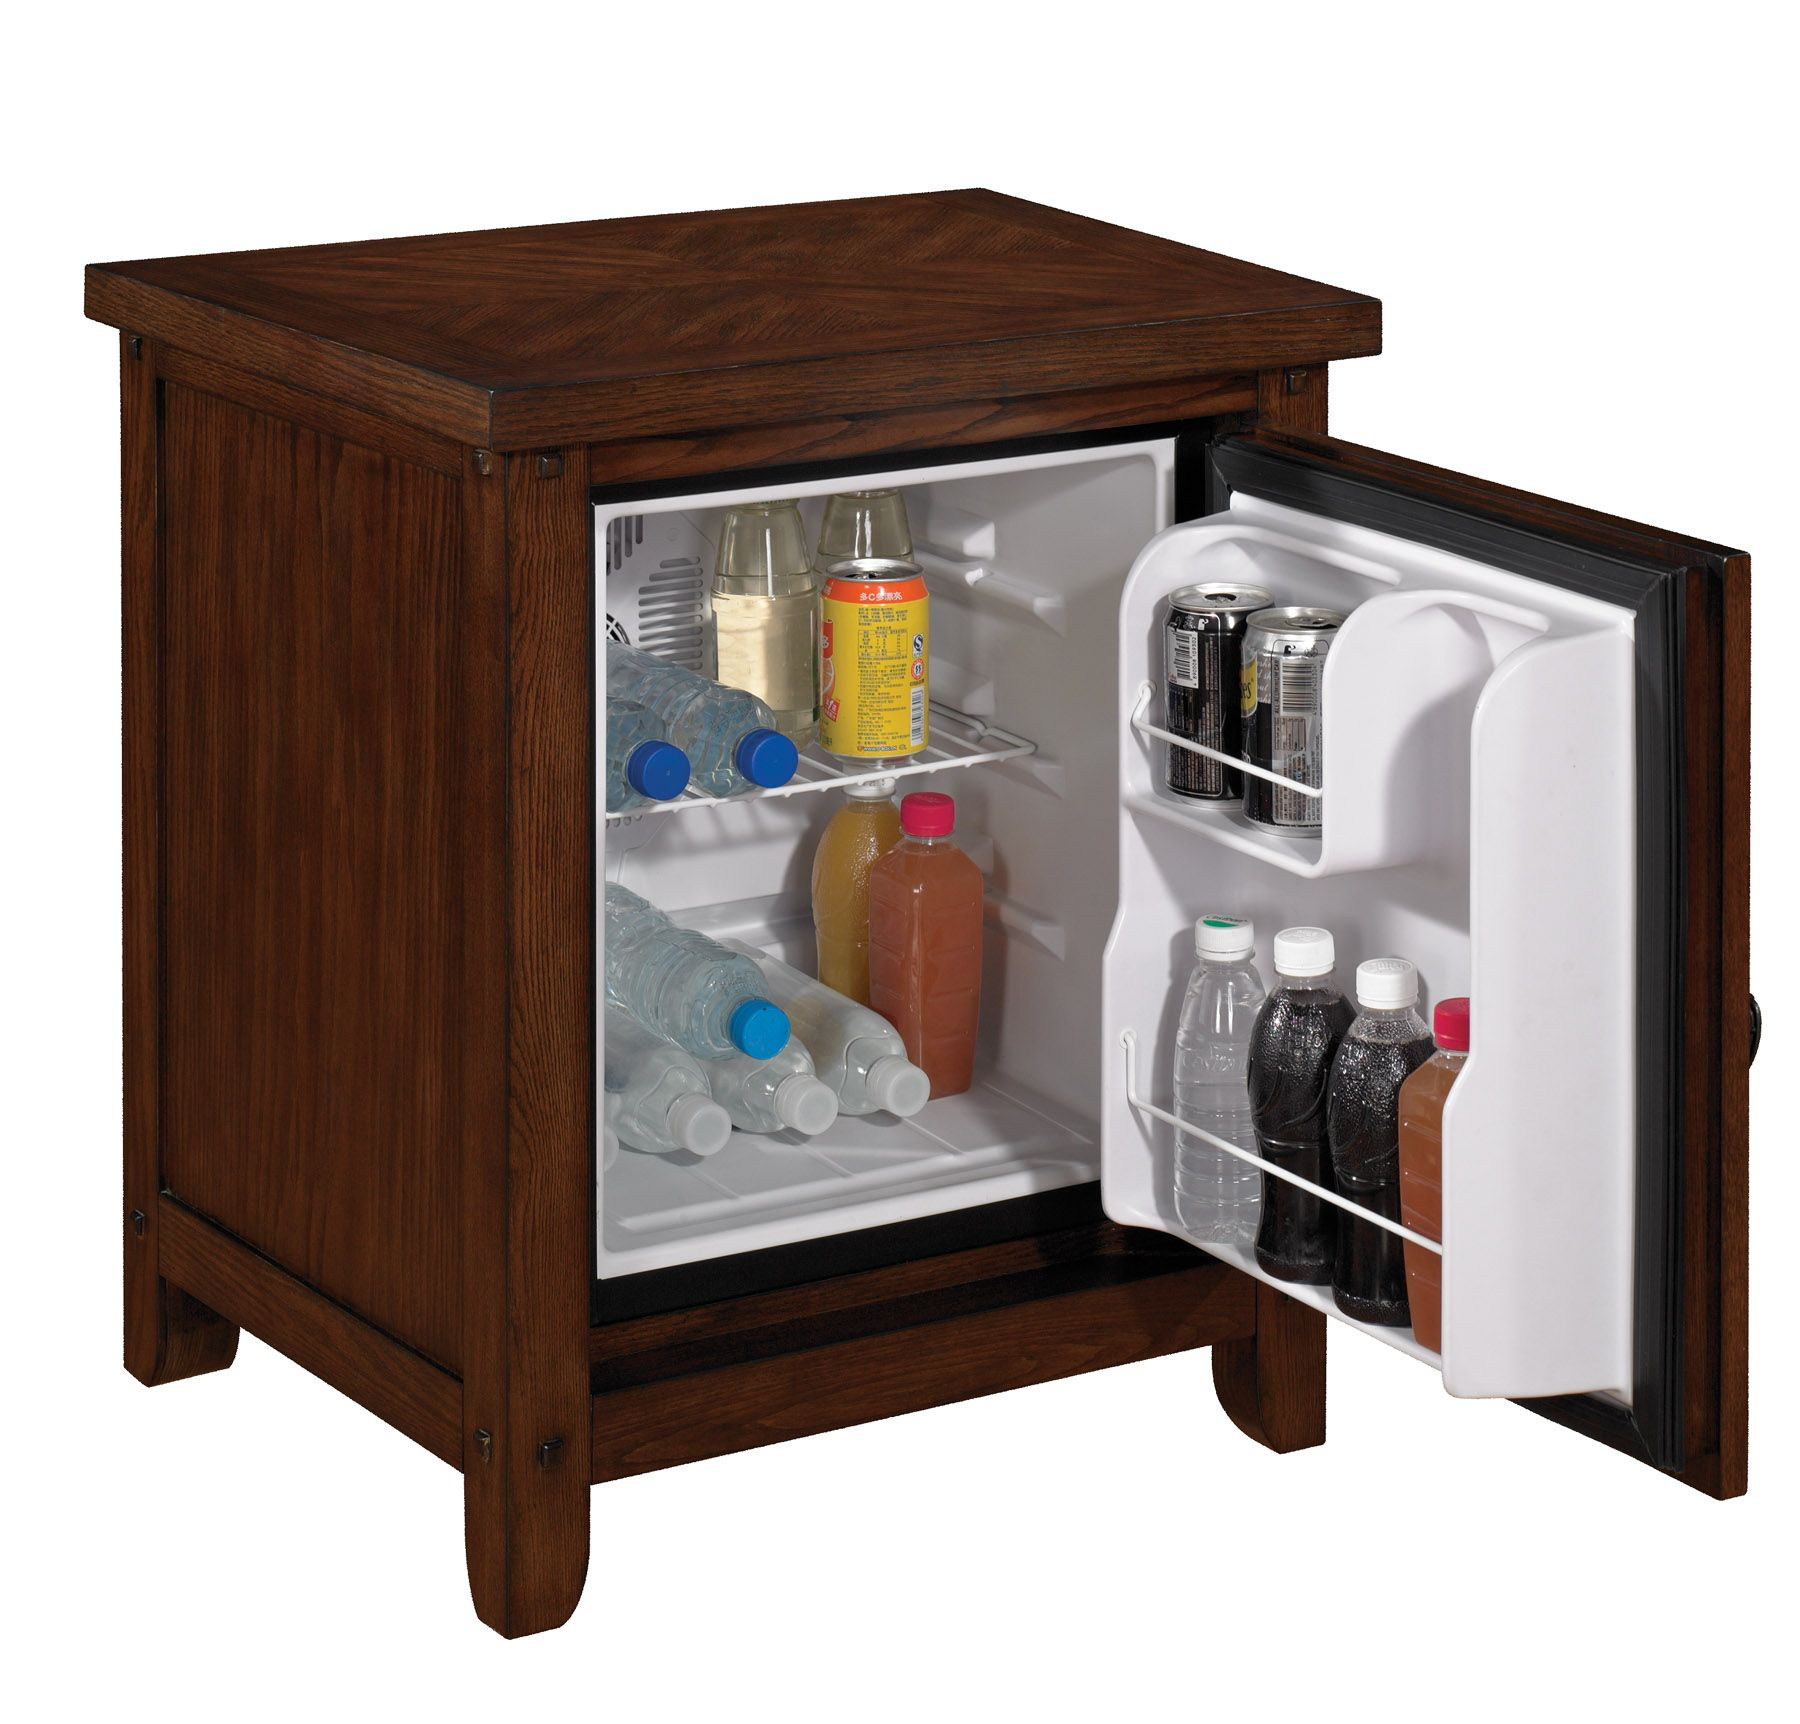 Wooden Refrigerator Cabinets ~ Hide that bulky dorm fridge in your home or office with